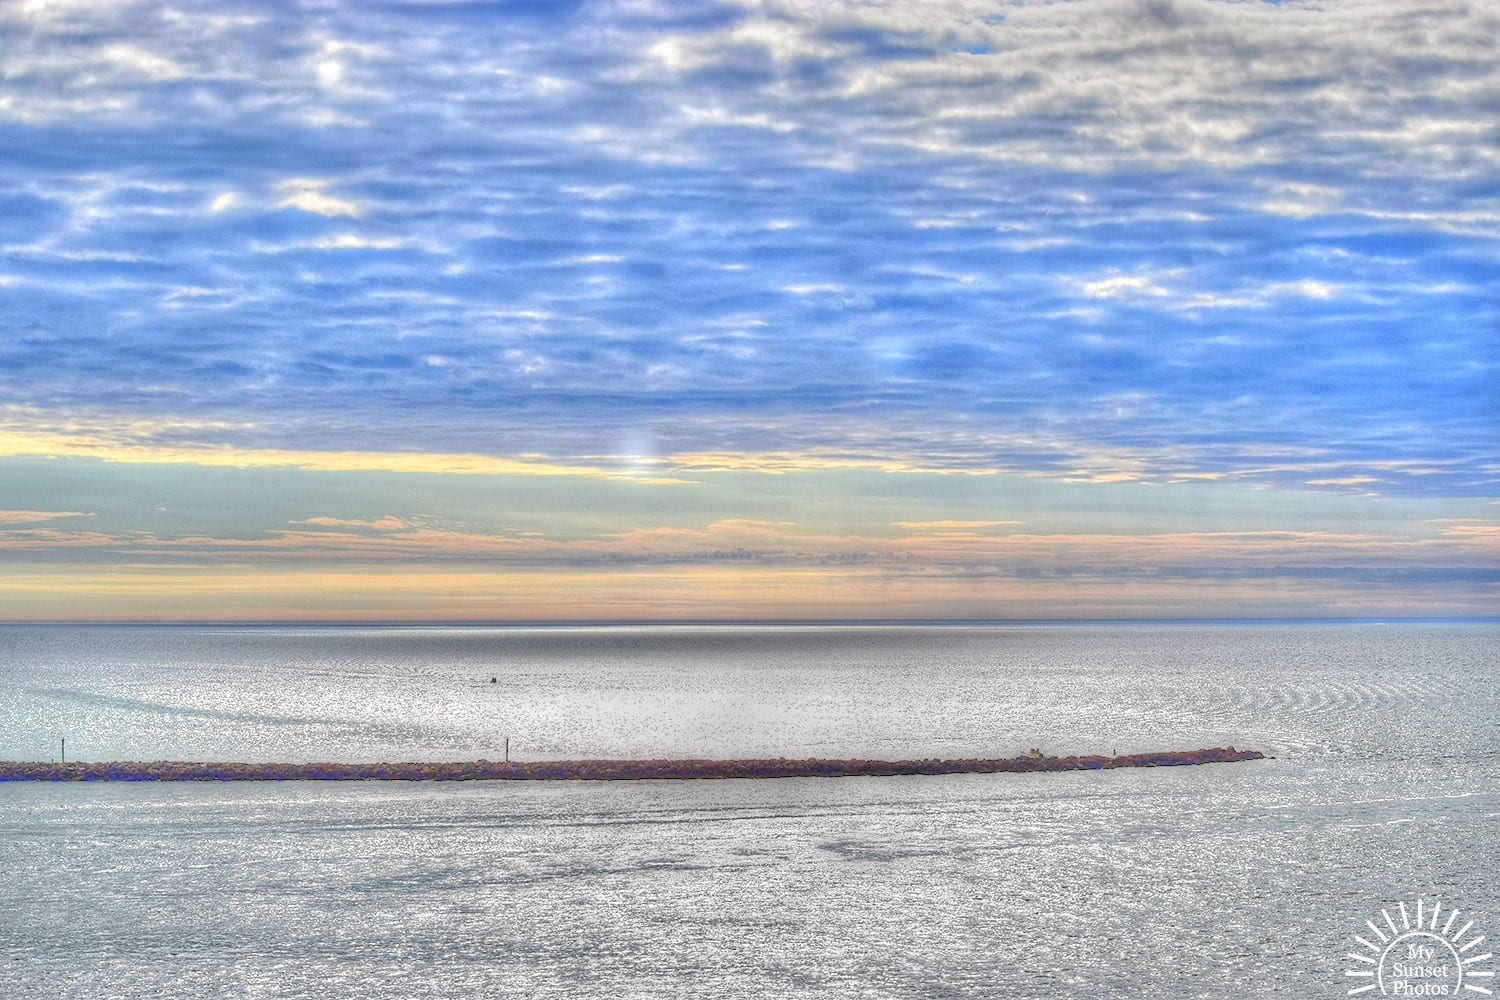 My Sunset photos - Afternoon Calm Clouds in Sand Key Florida